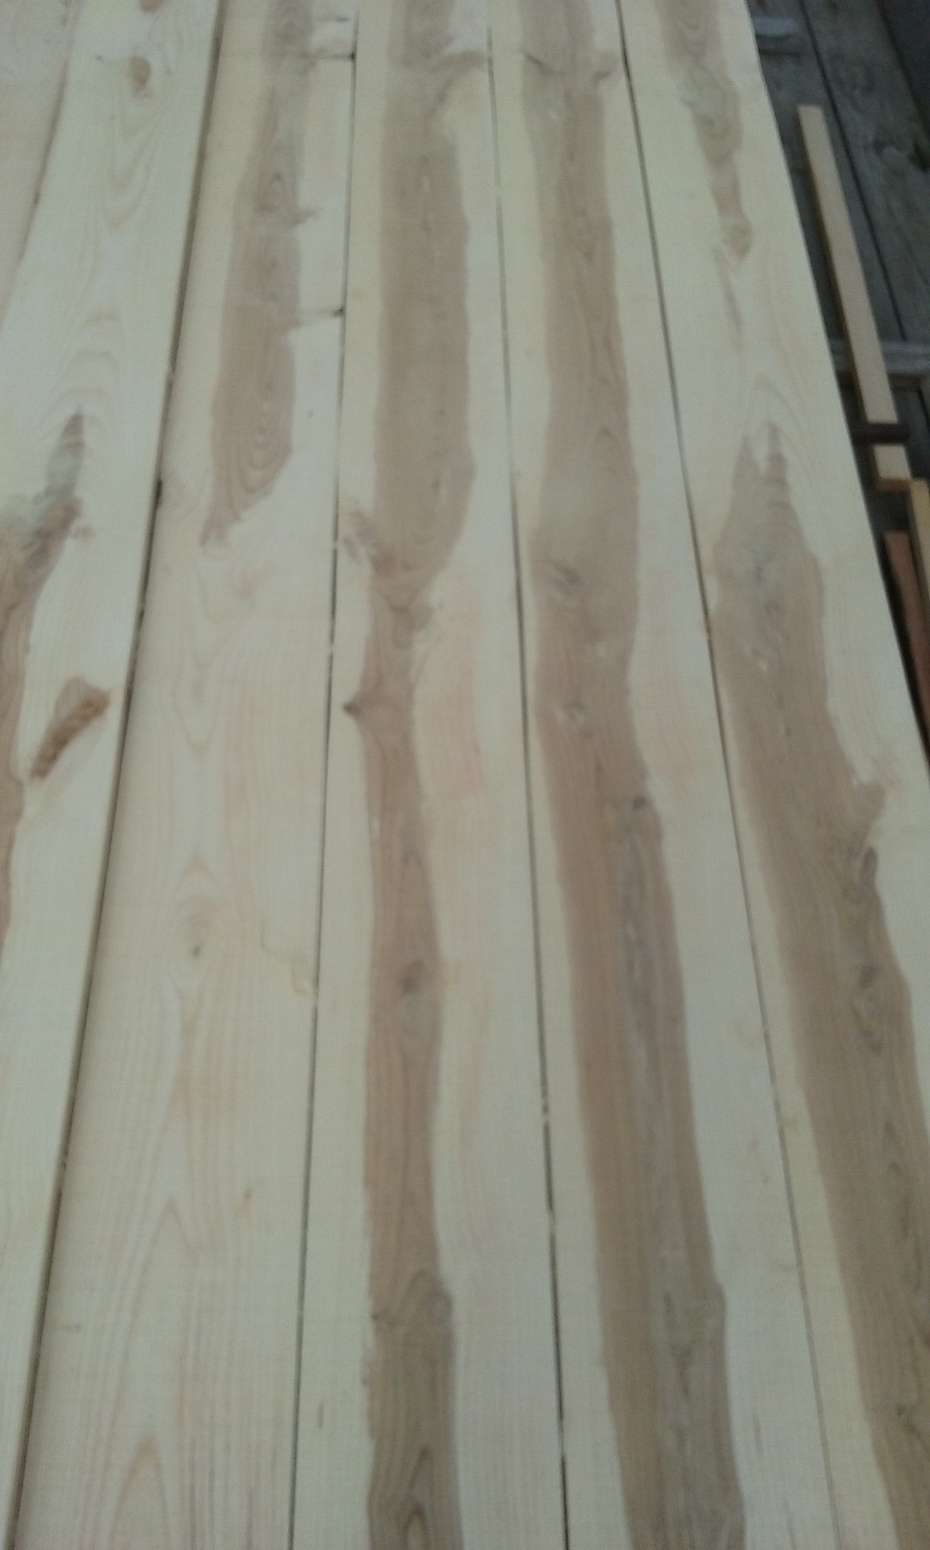 Ash Staining